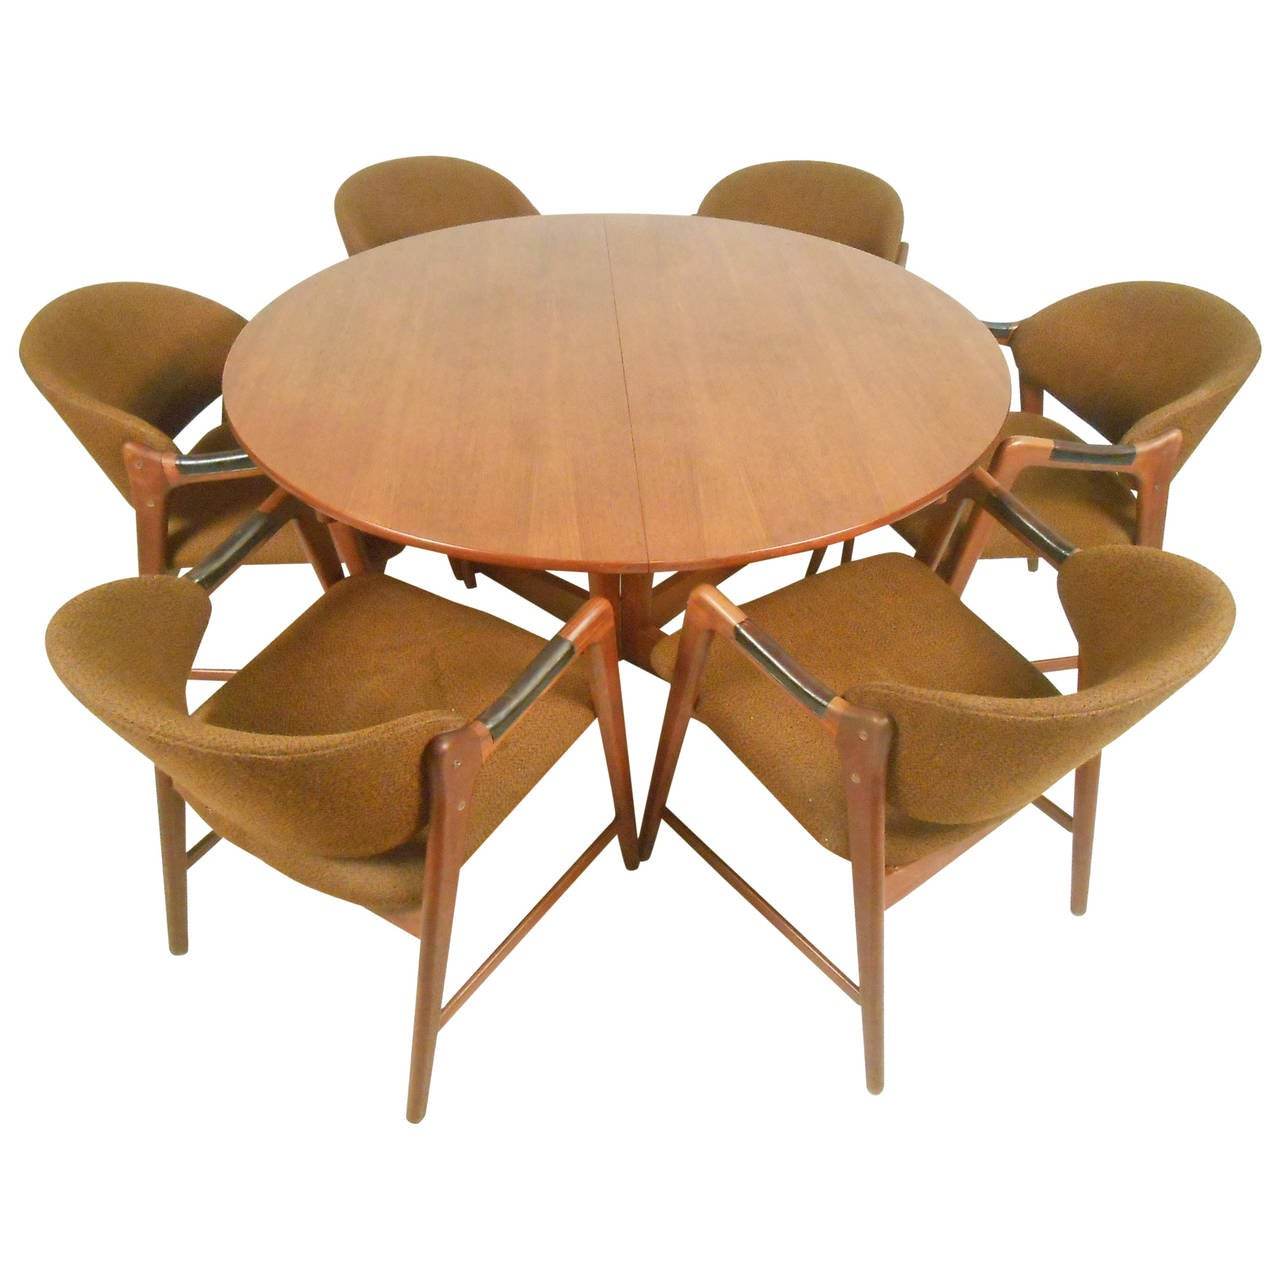 Mid century modern teak dining set with westnofa chairs for Modern dining room chairs for sale